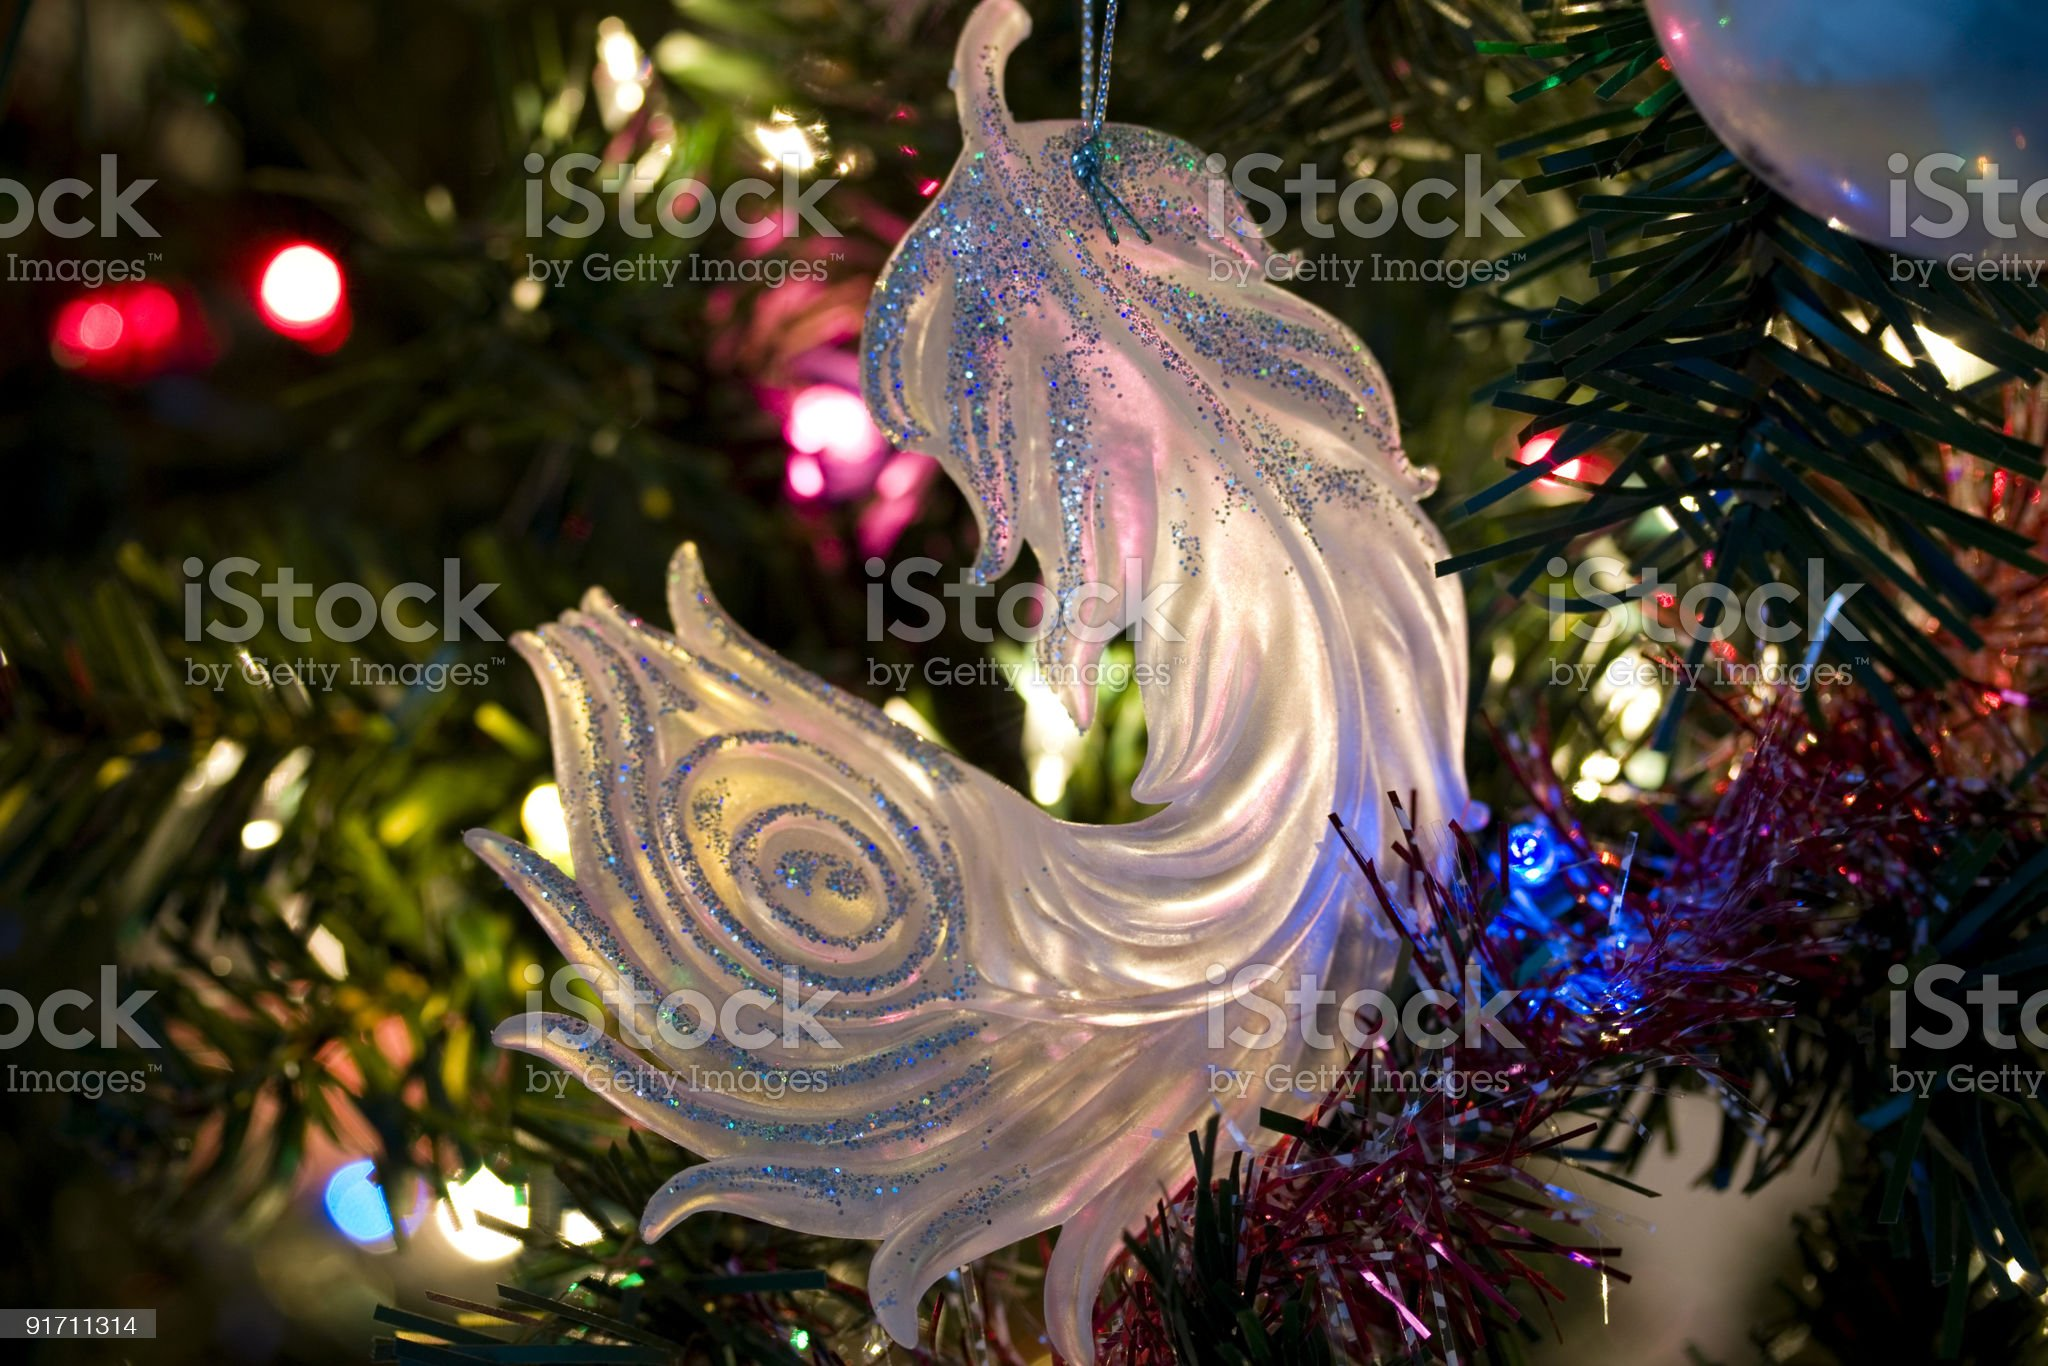 Feather Ornament royalty-free stock photo